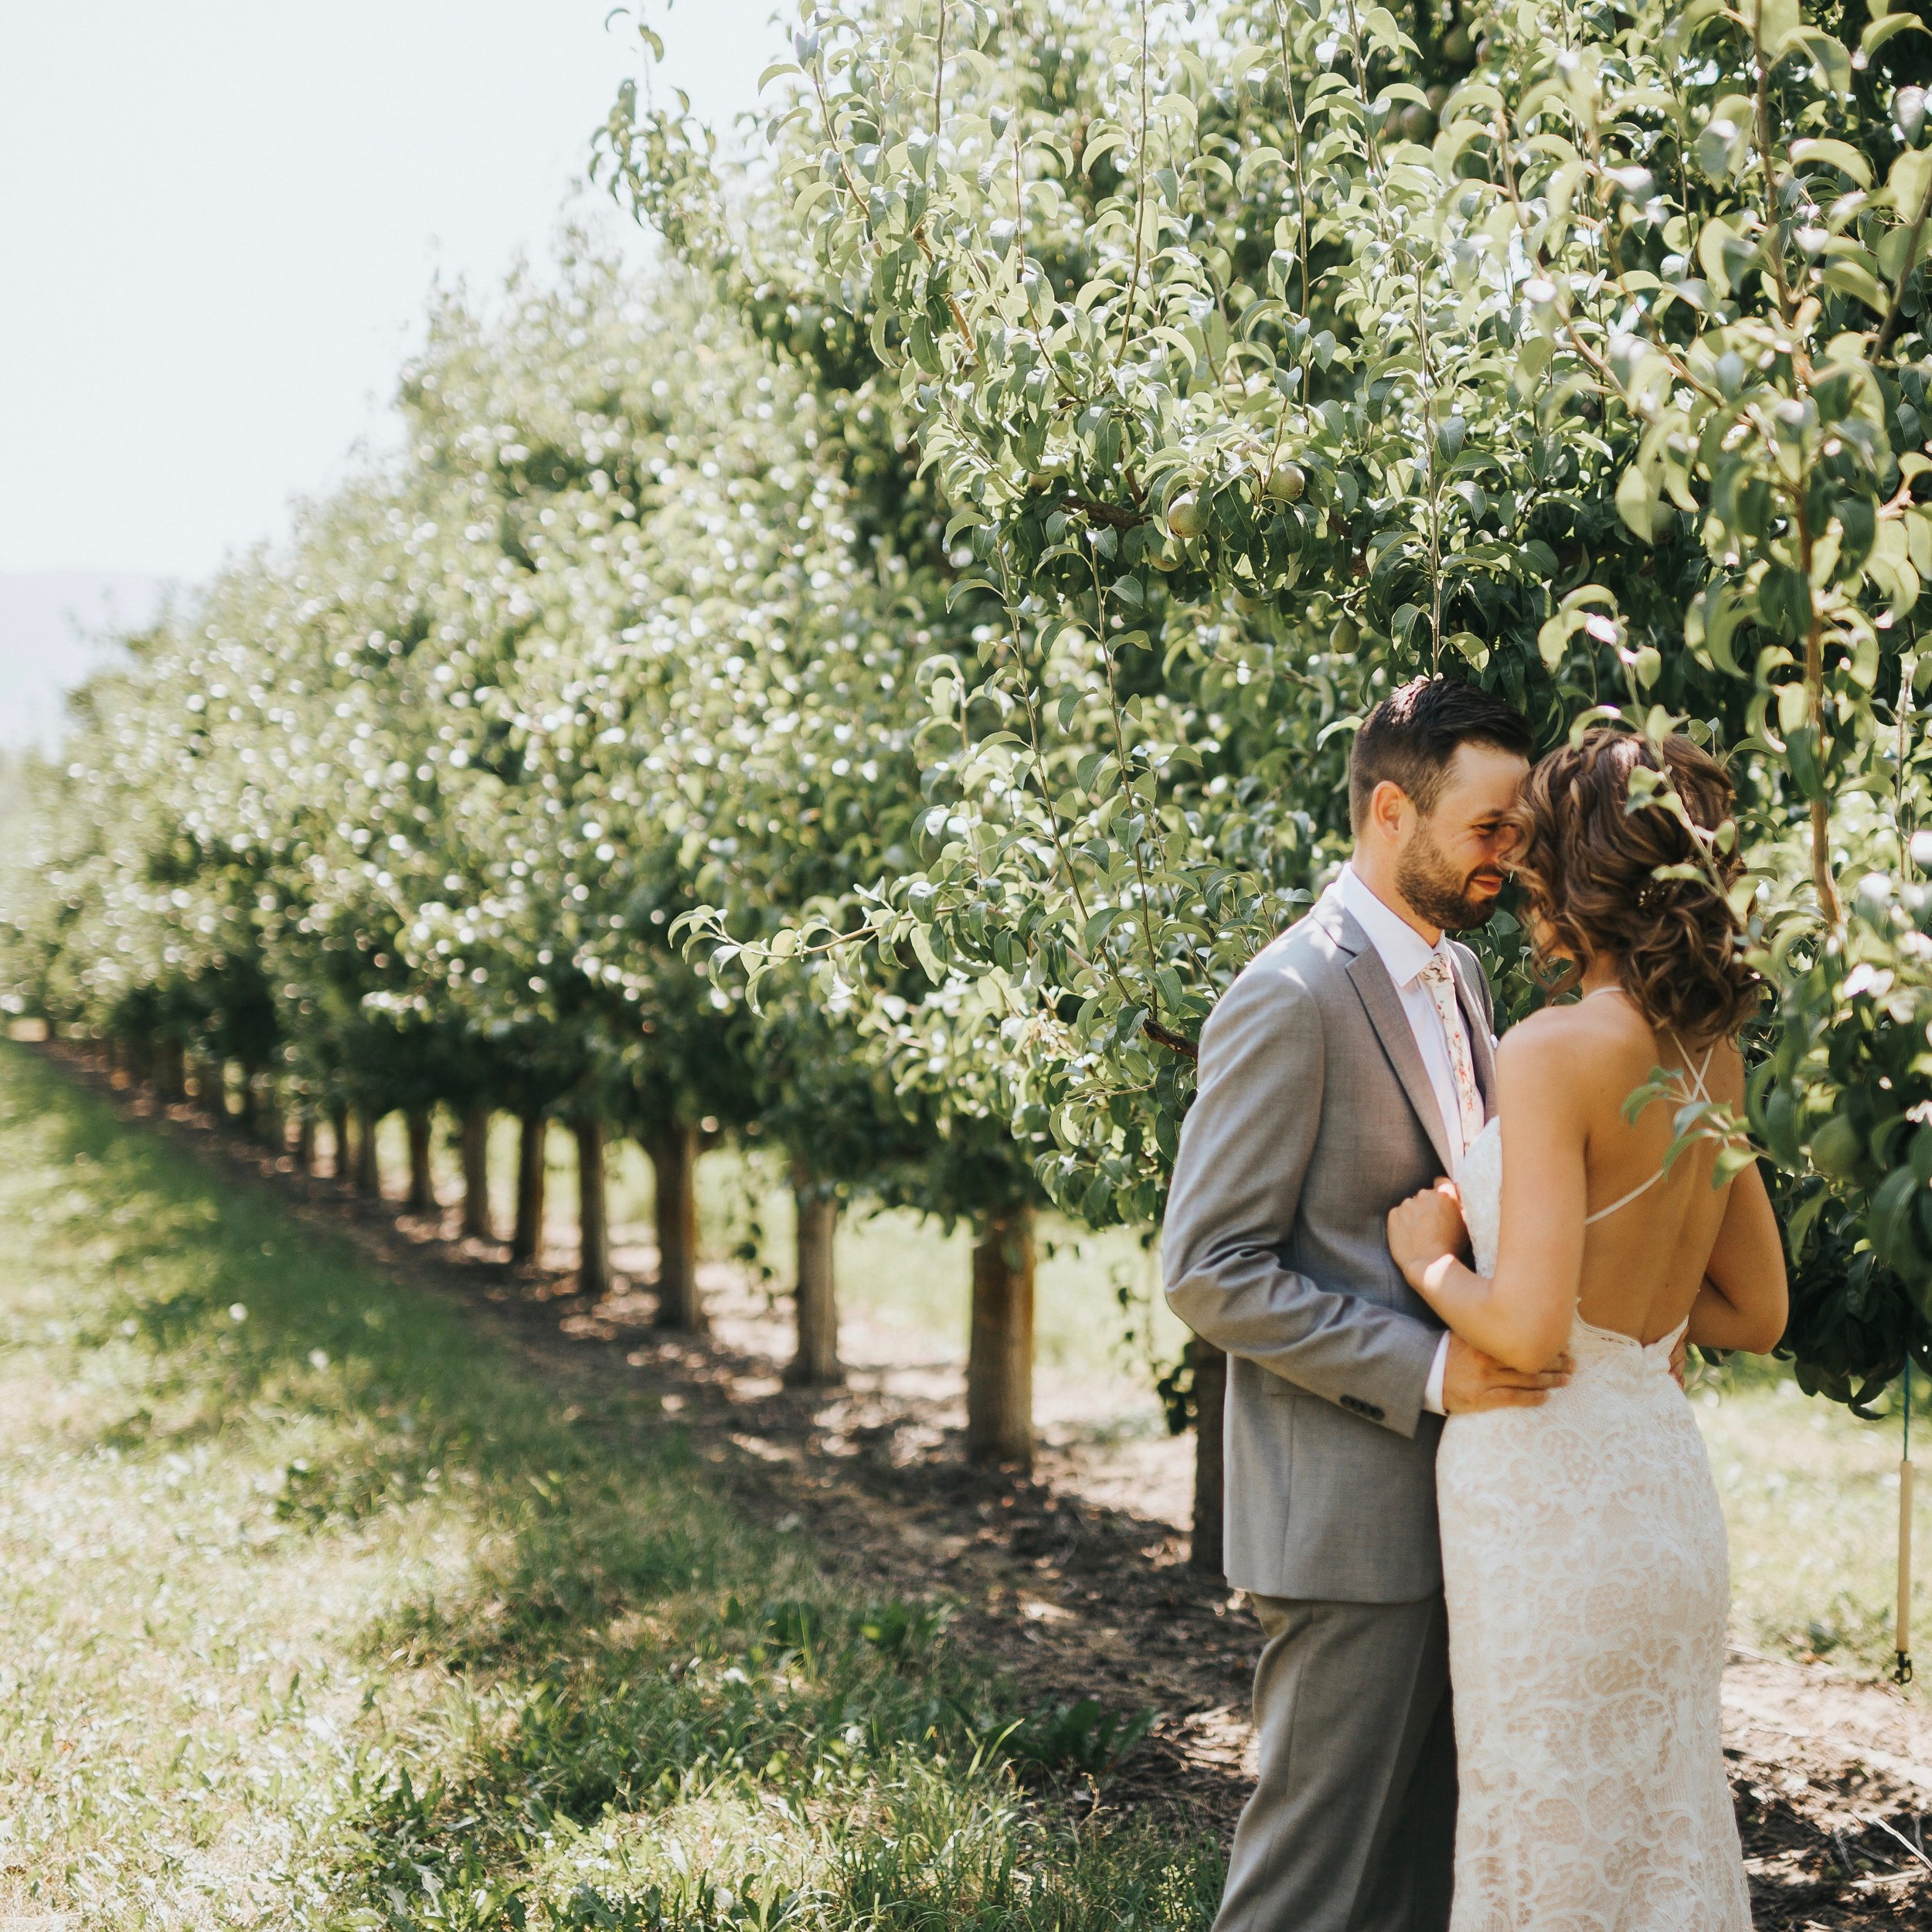 Penticton Orchard Wedding Okanagan BC.jpeg